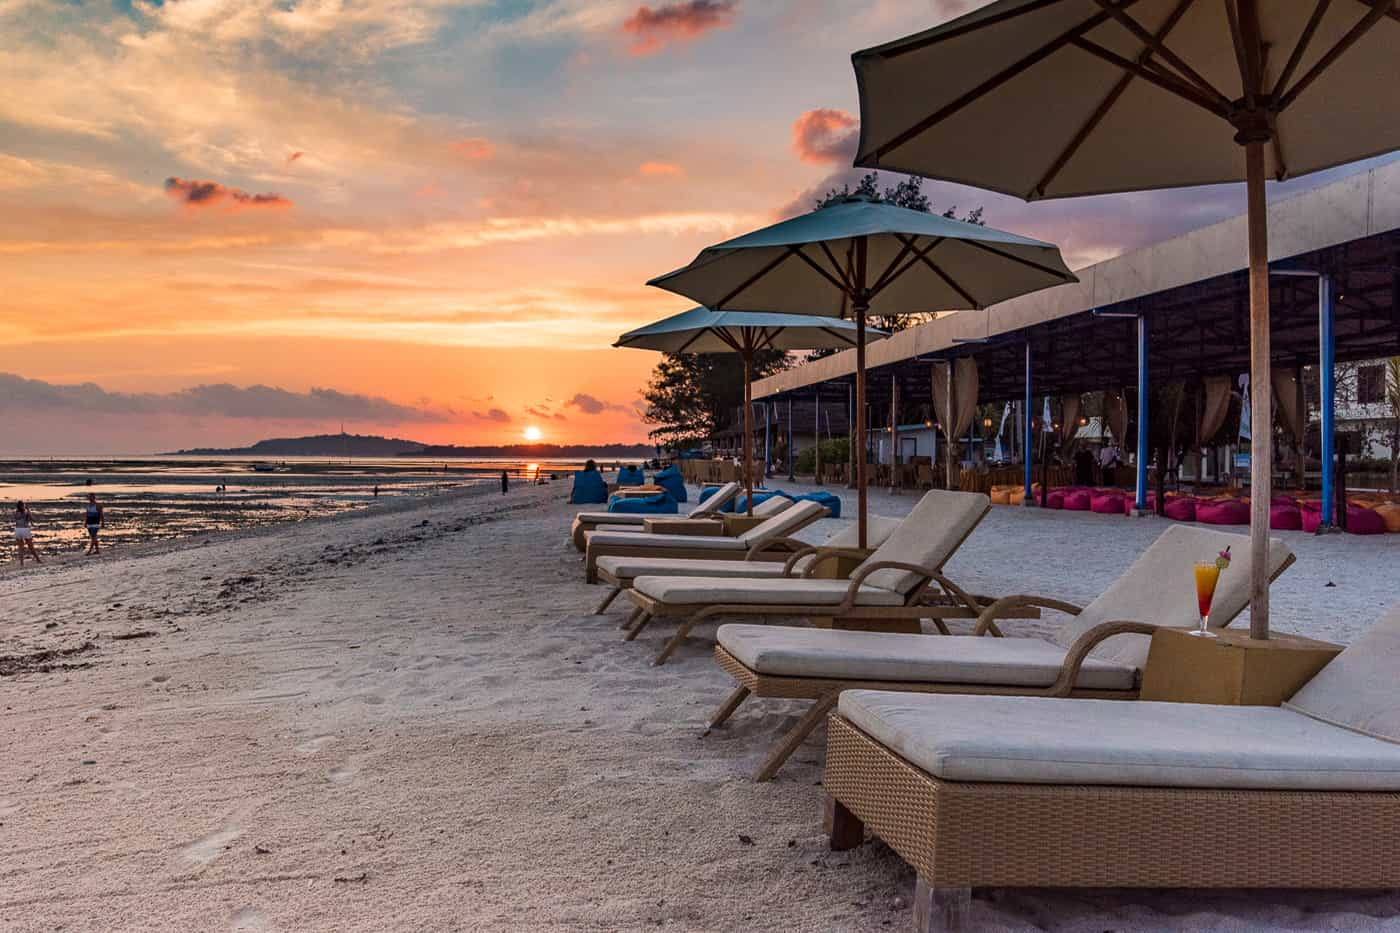 Sunset beach view at Hotel Ombak Paradise in the Gili Islands of Lombok Indonesia